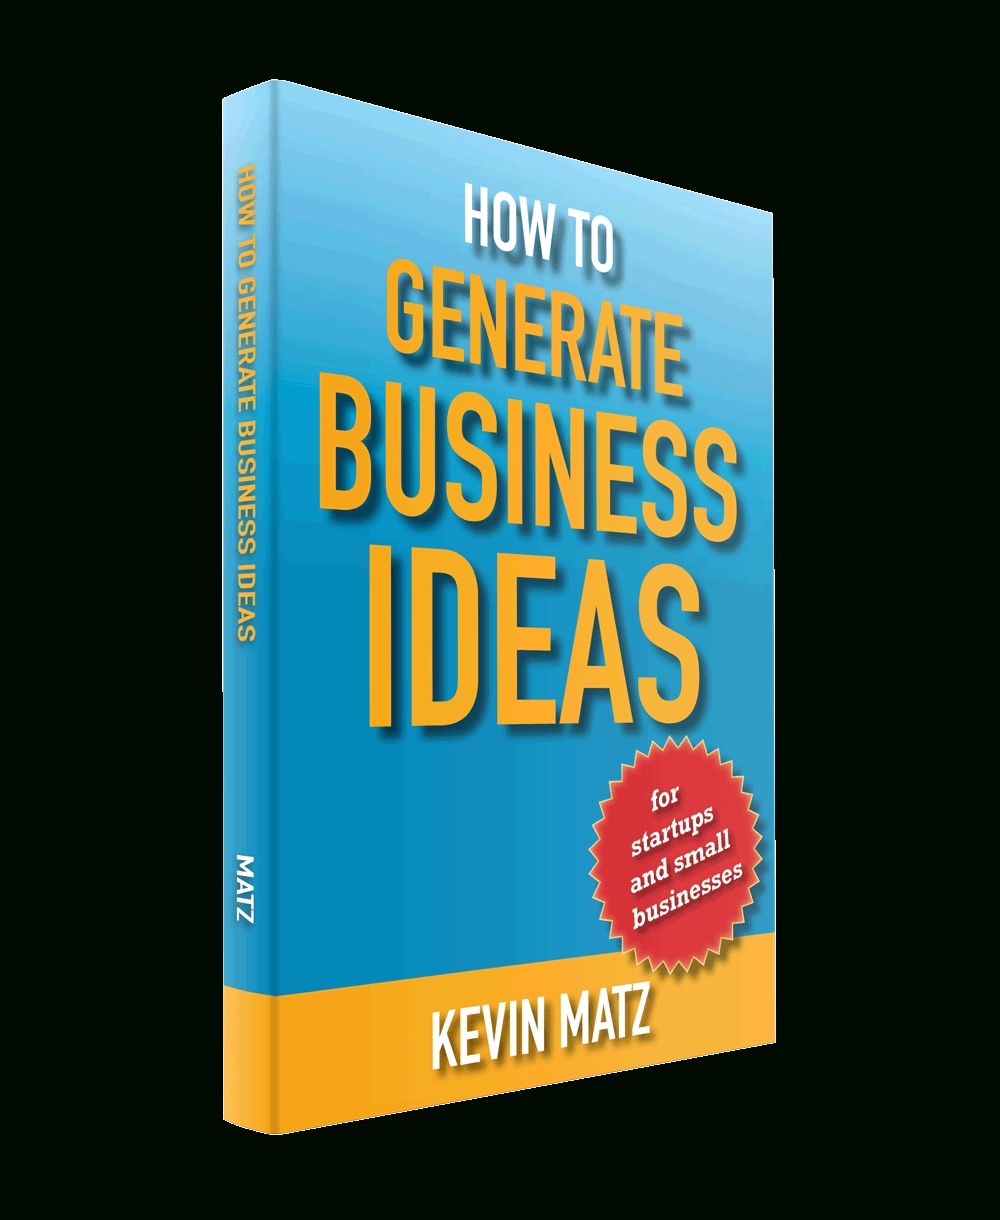 10 Unique How To Generate Business Ideas how to generate business ideas 2021